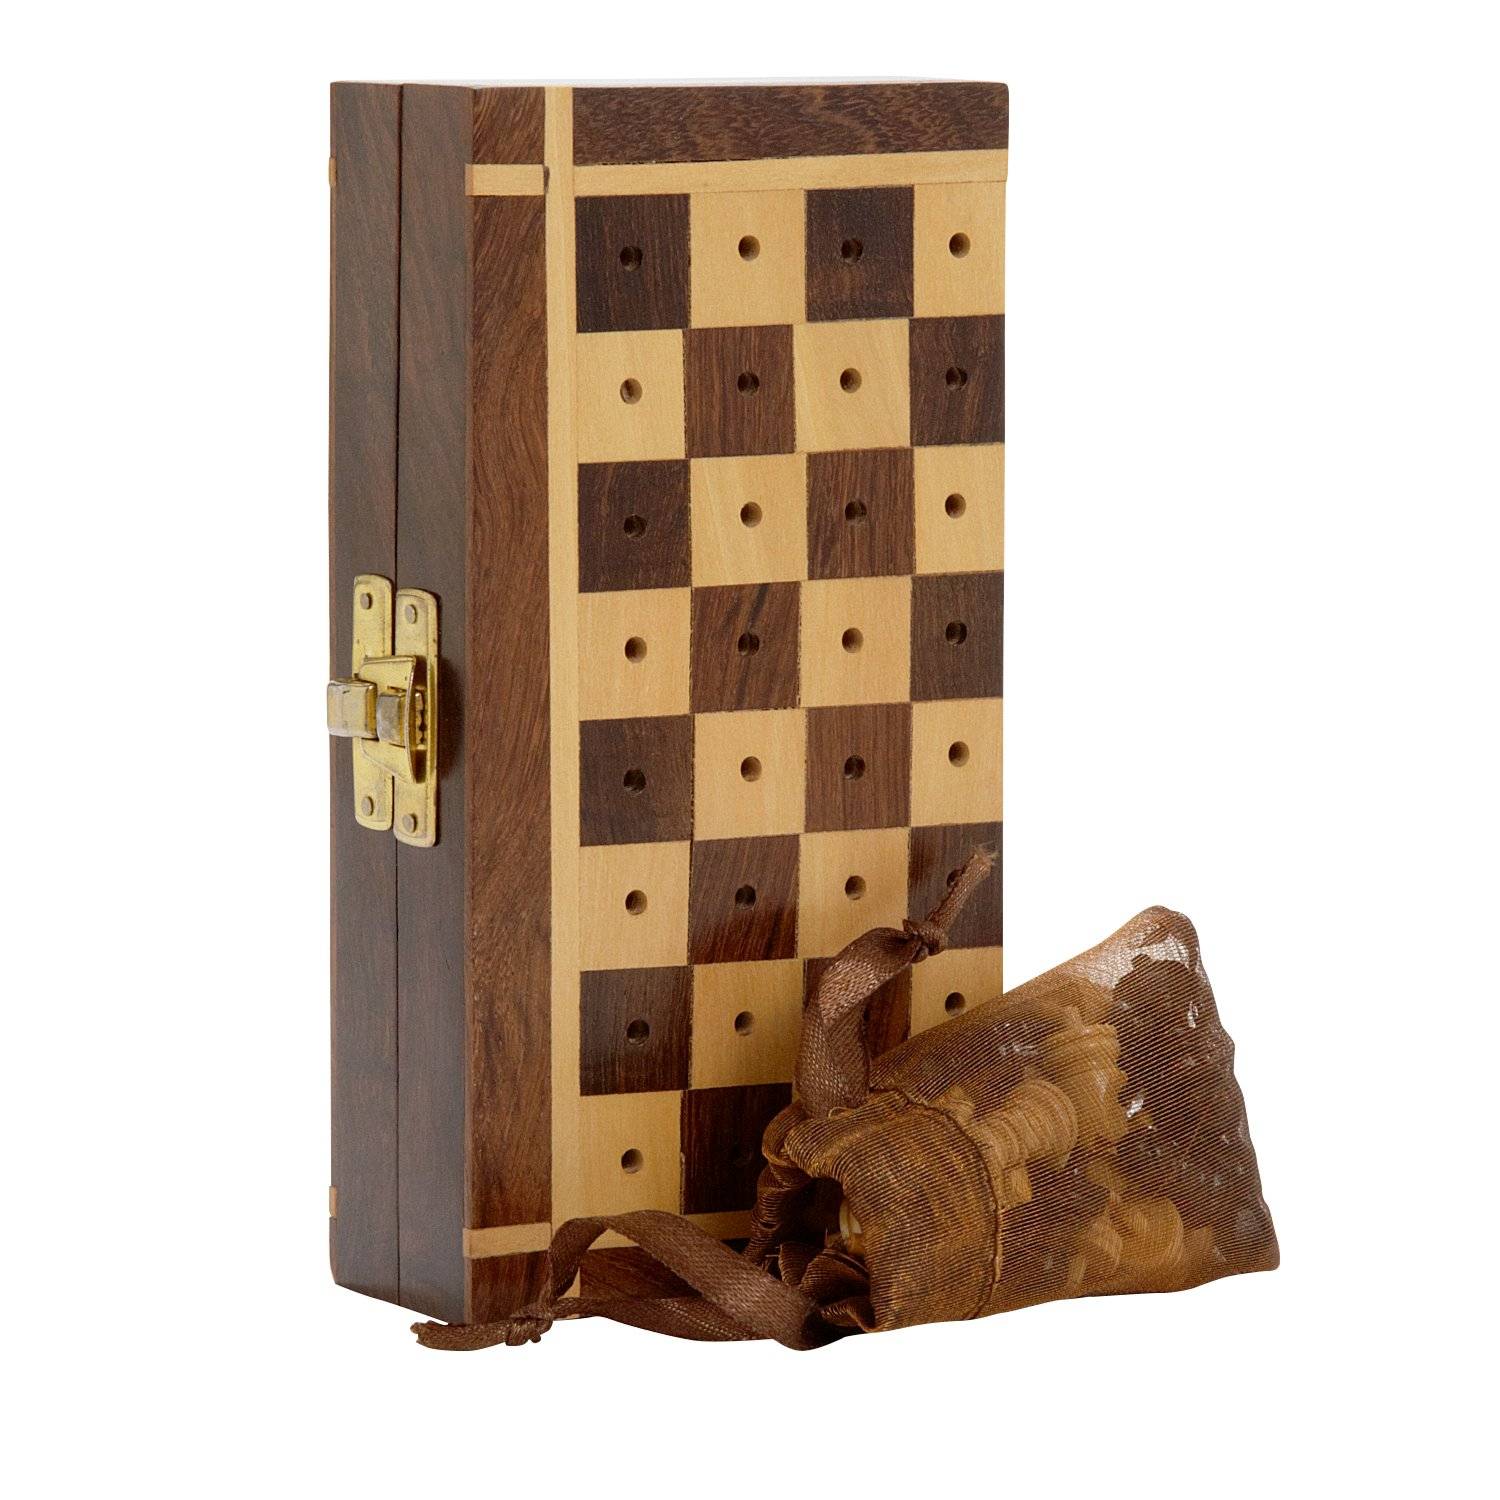 ブランド品専門の Shesham Wood Chess Pegged Shesham Chess Set 'Shesham Travel Chess Set' Travel B077B7PX1Q, 下呂市:b8764ae7 --- nicolasalvioli.com